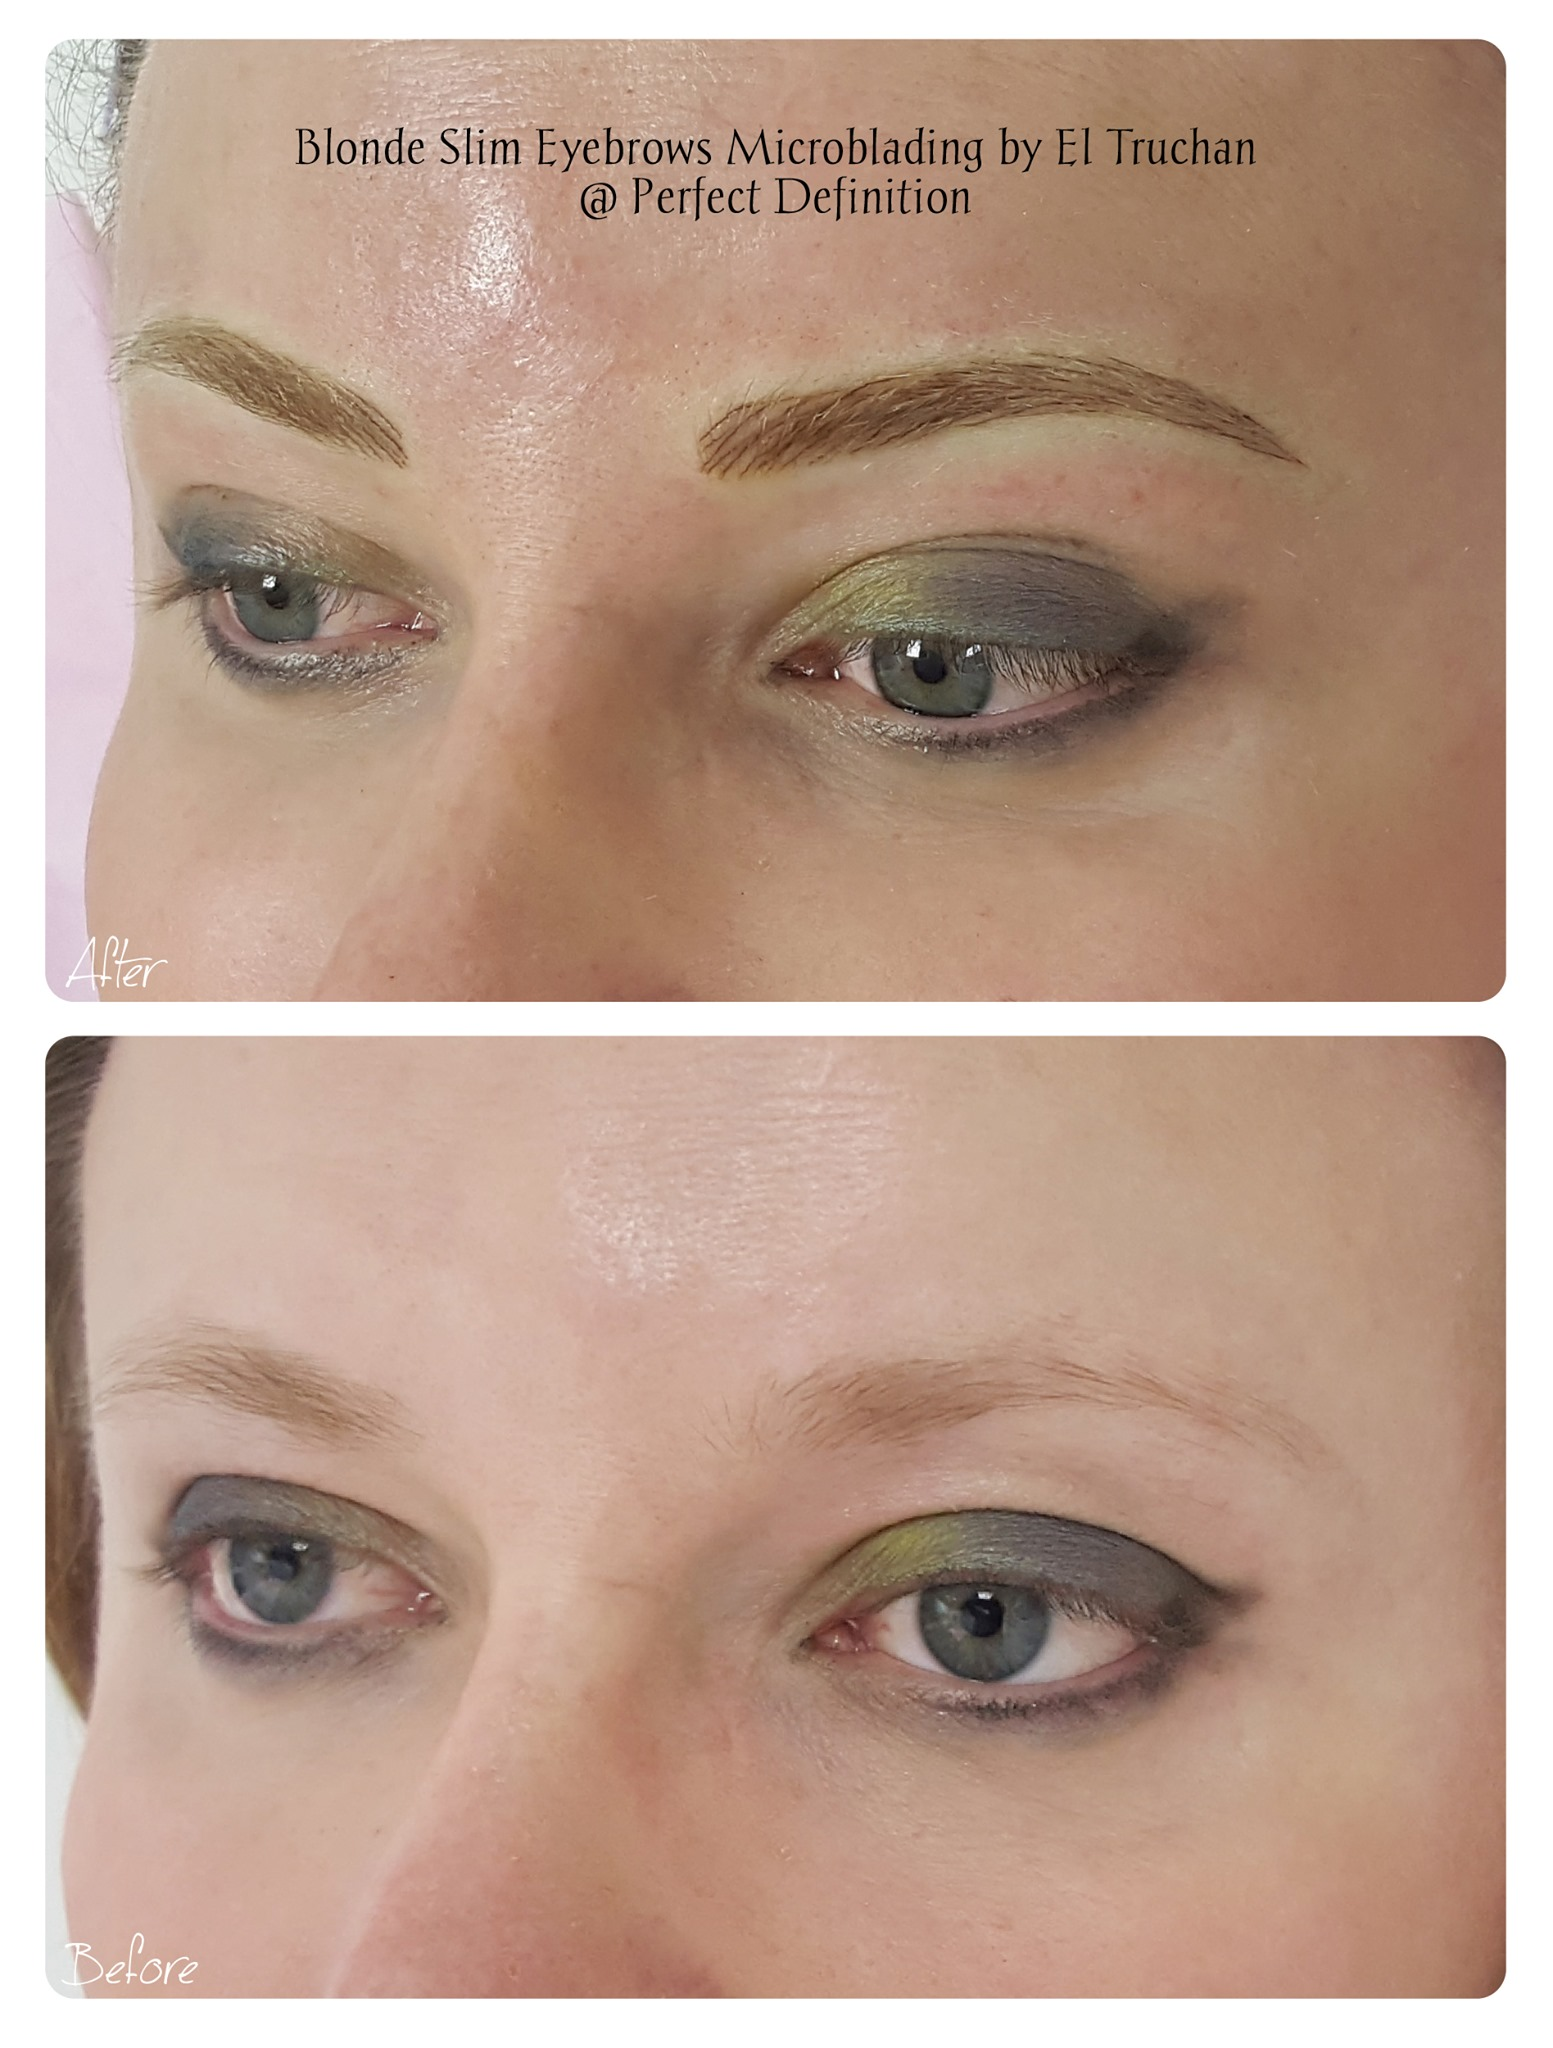 Blonde Slim Eyebrows Microblading by El